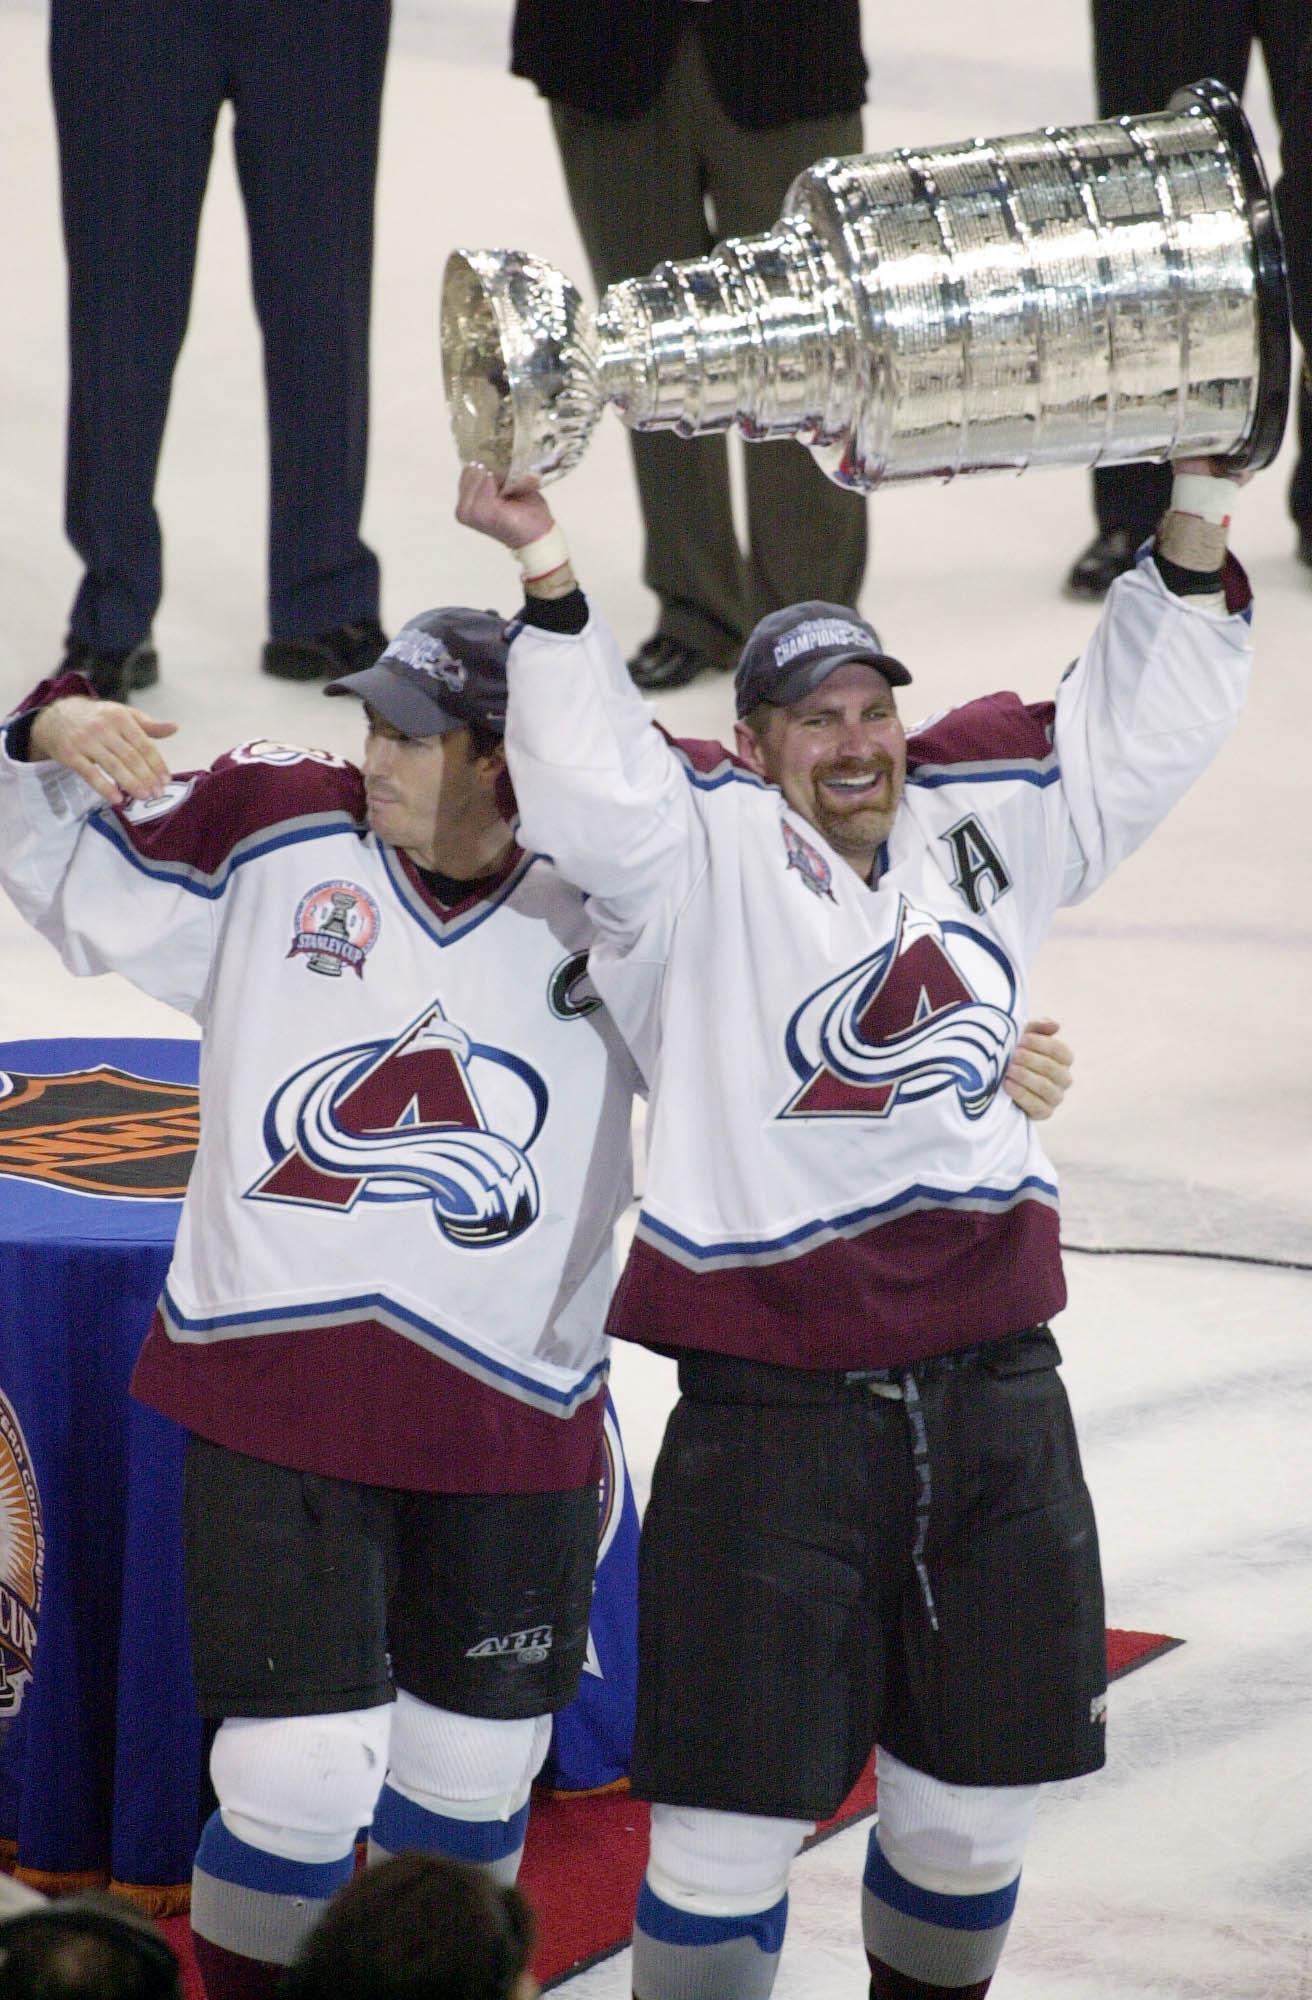 9 Jun 2001:  Joe Sakic #19 and Ray Borque #77  (right) of the Colorado Avalanche hold up the Stanley Cup after defeating the New Jersey Devils in game seven of the NHL Stanley Cup Finals at Pepsi Center in Denver, Colorado.  The Avalanche won 3-1 to take